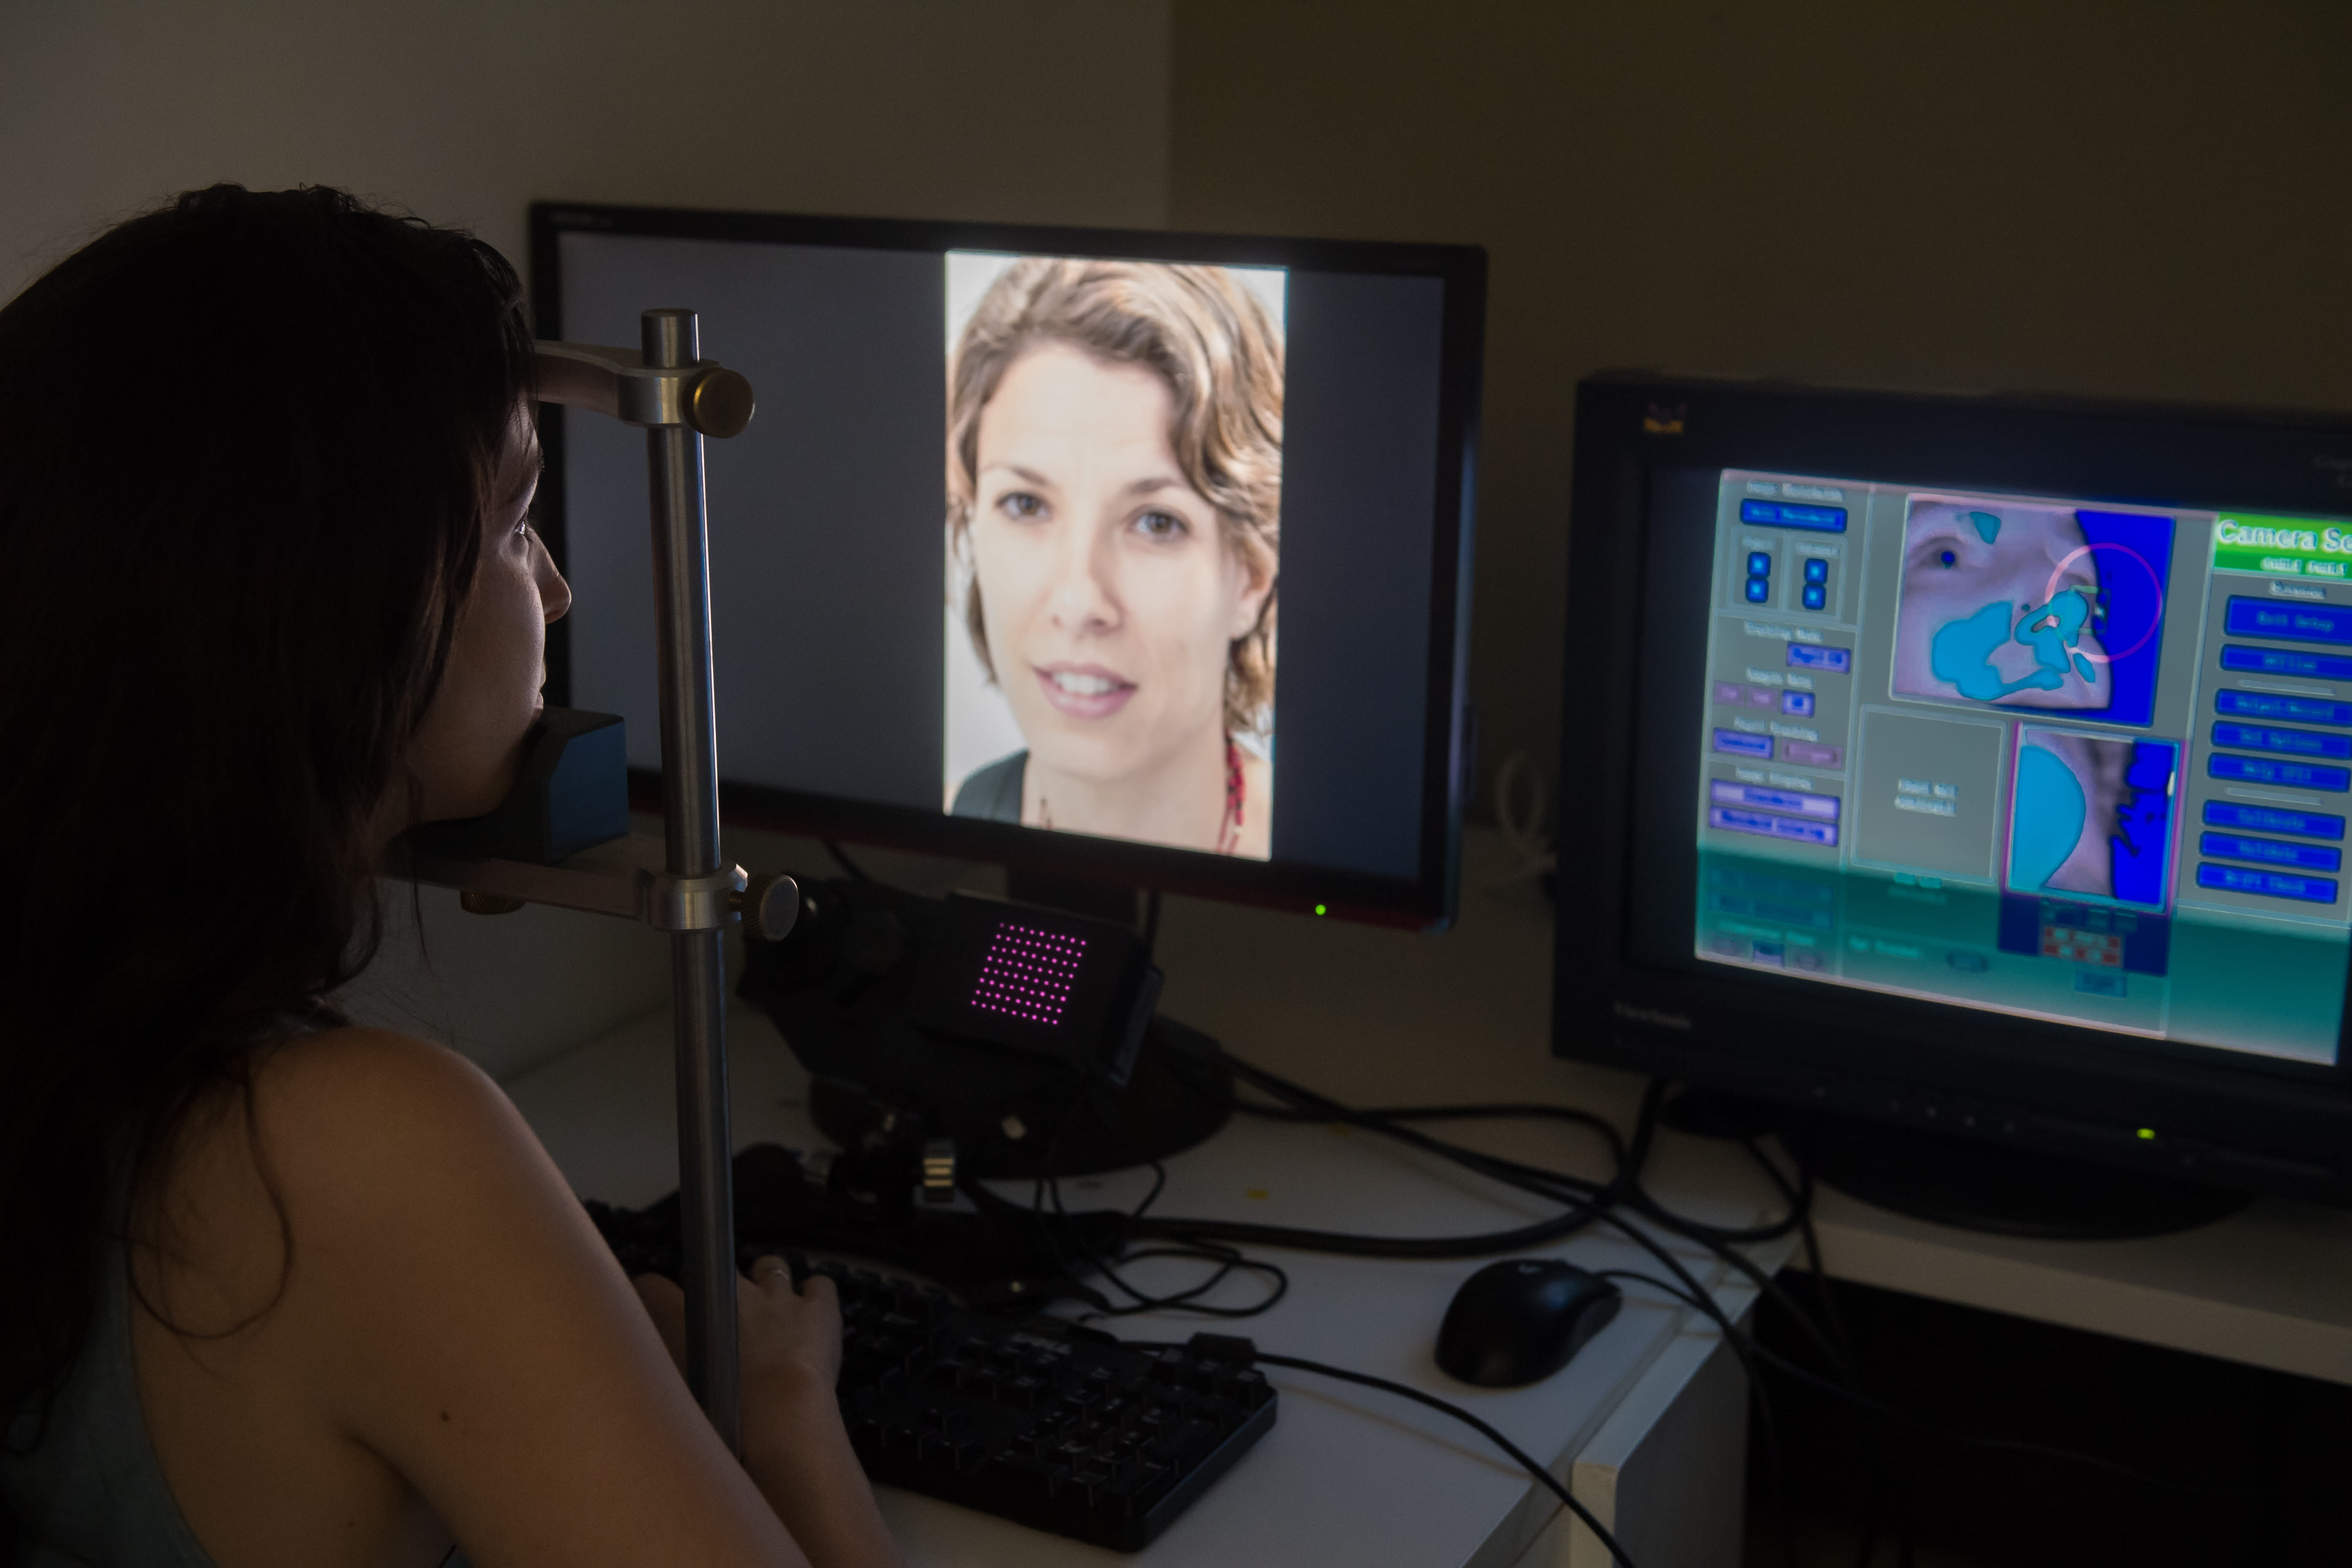 Face recognition research at Ben Gurion University